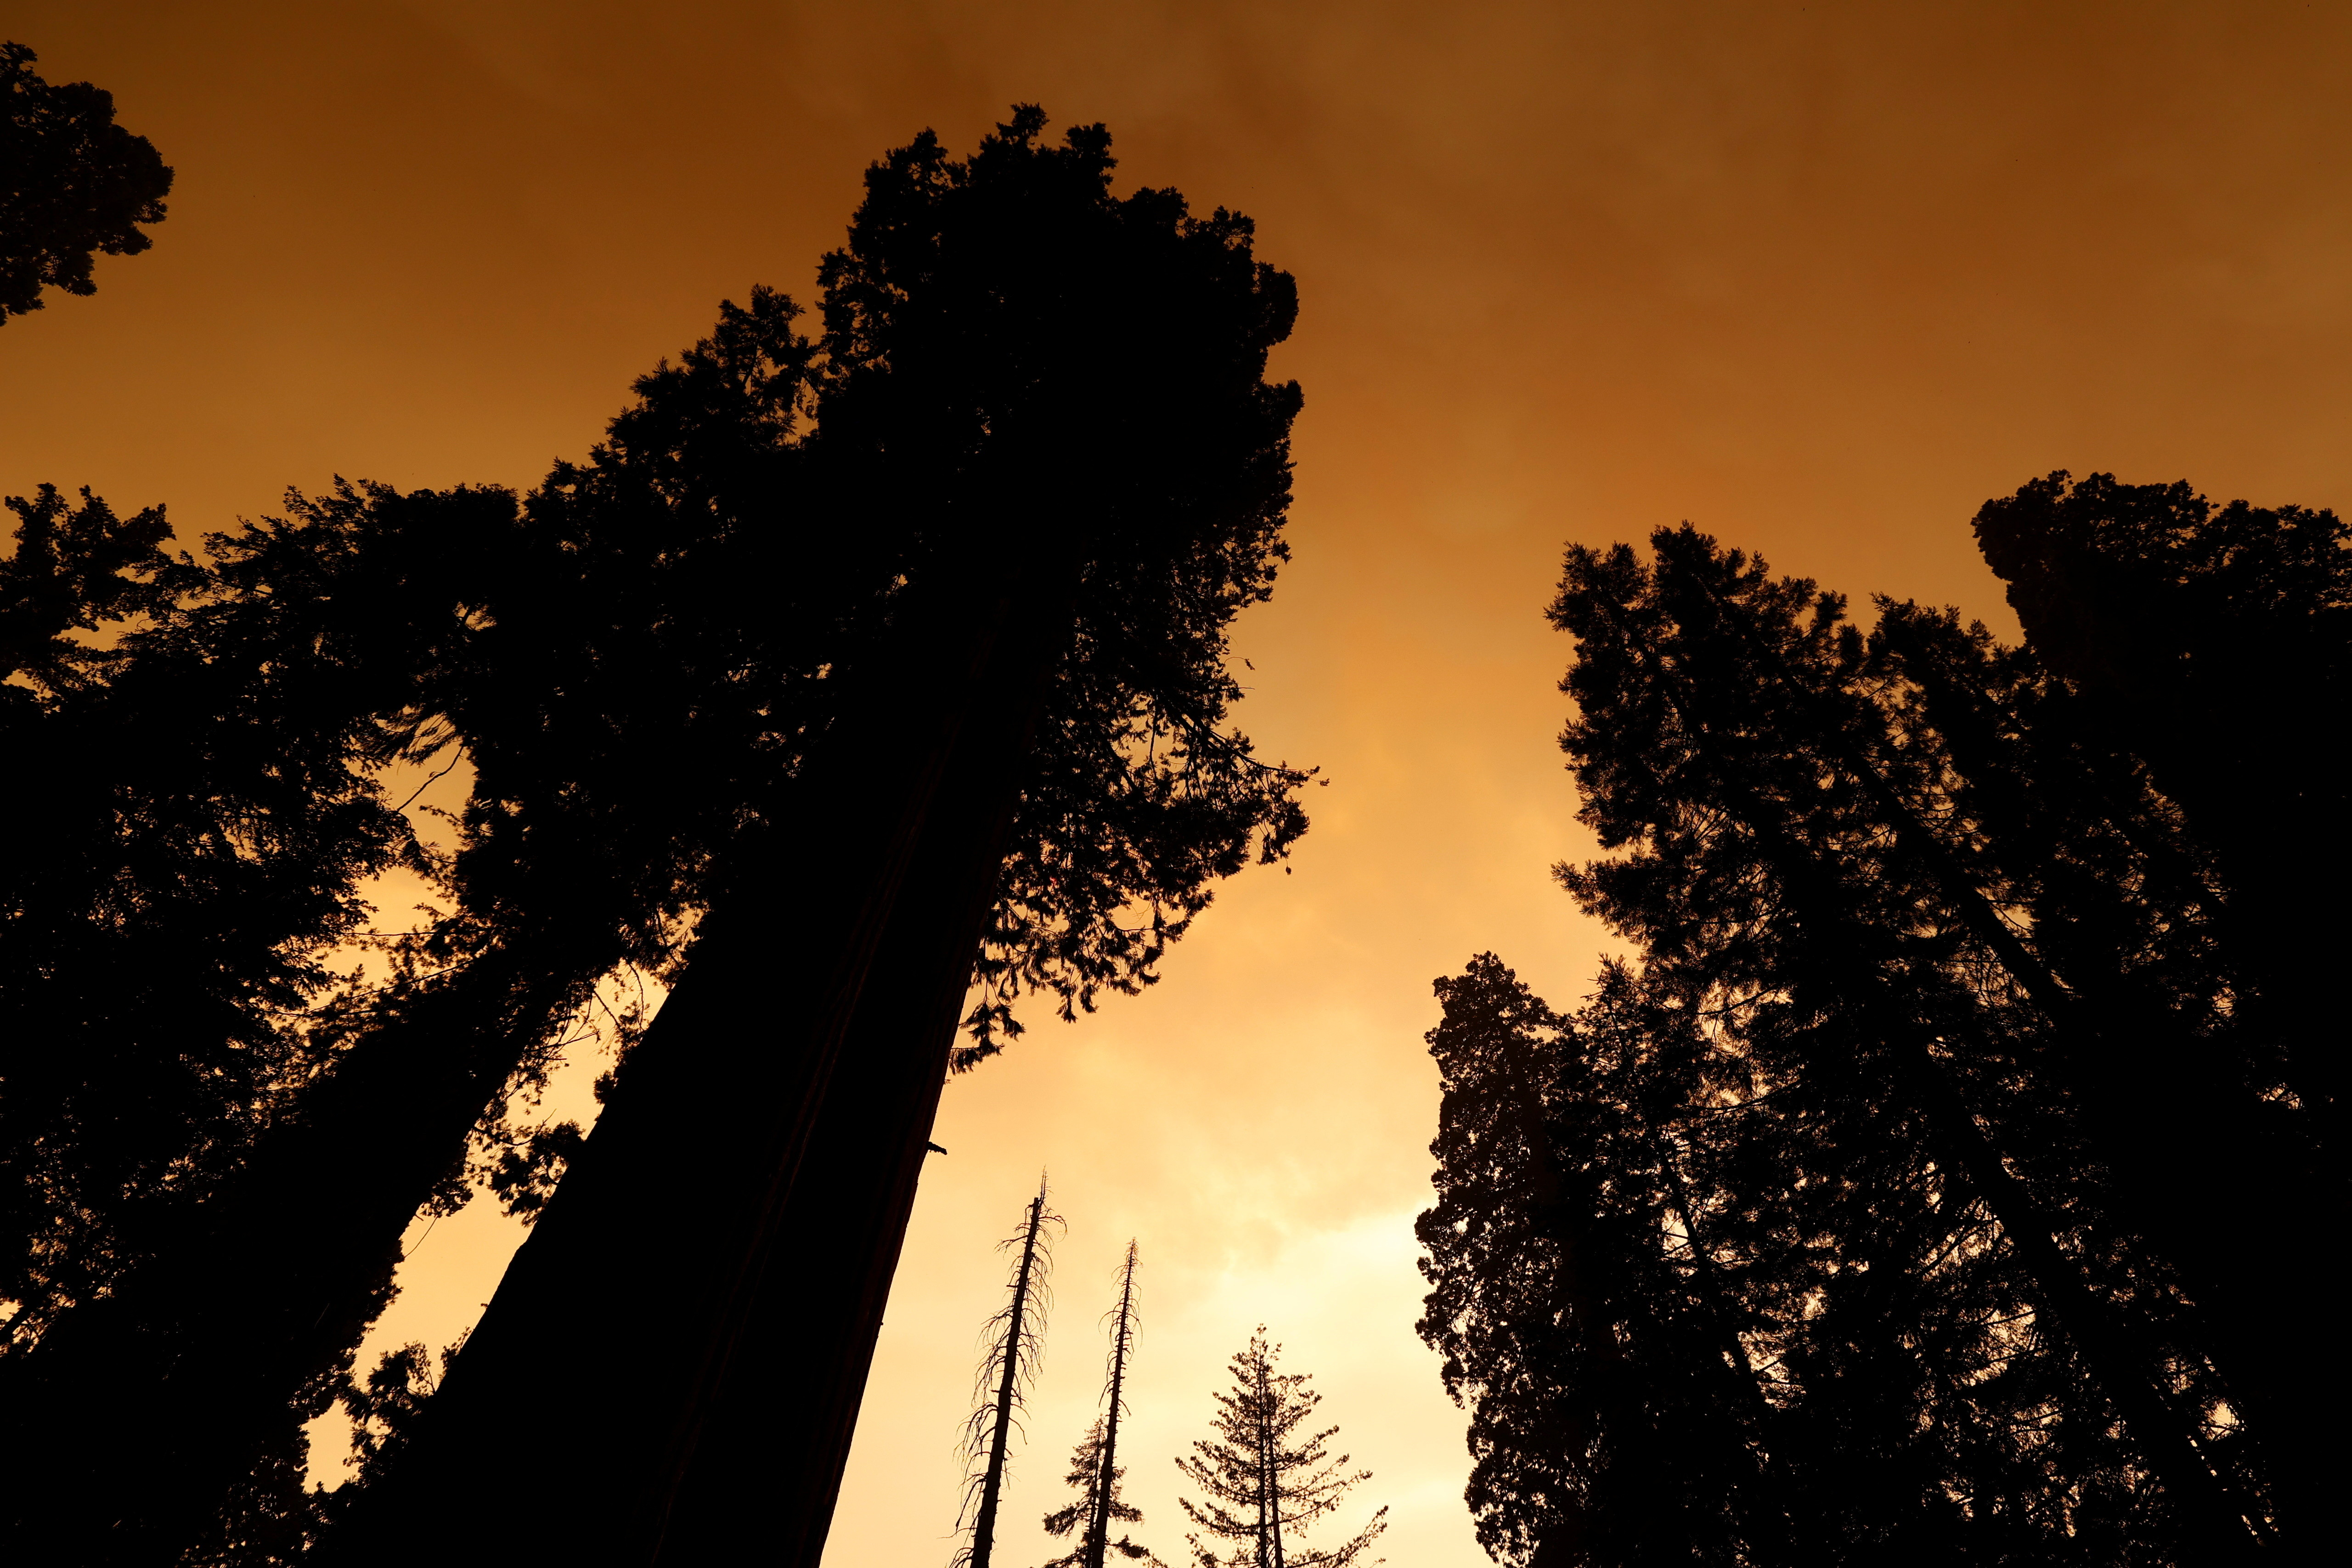 Smoke from a fire is seen through the trees of The Lost Grove in the Sequoia National Forest in California, U.S.